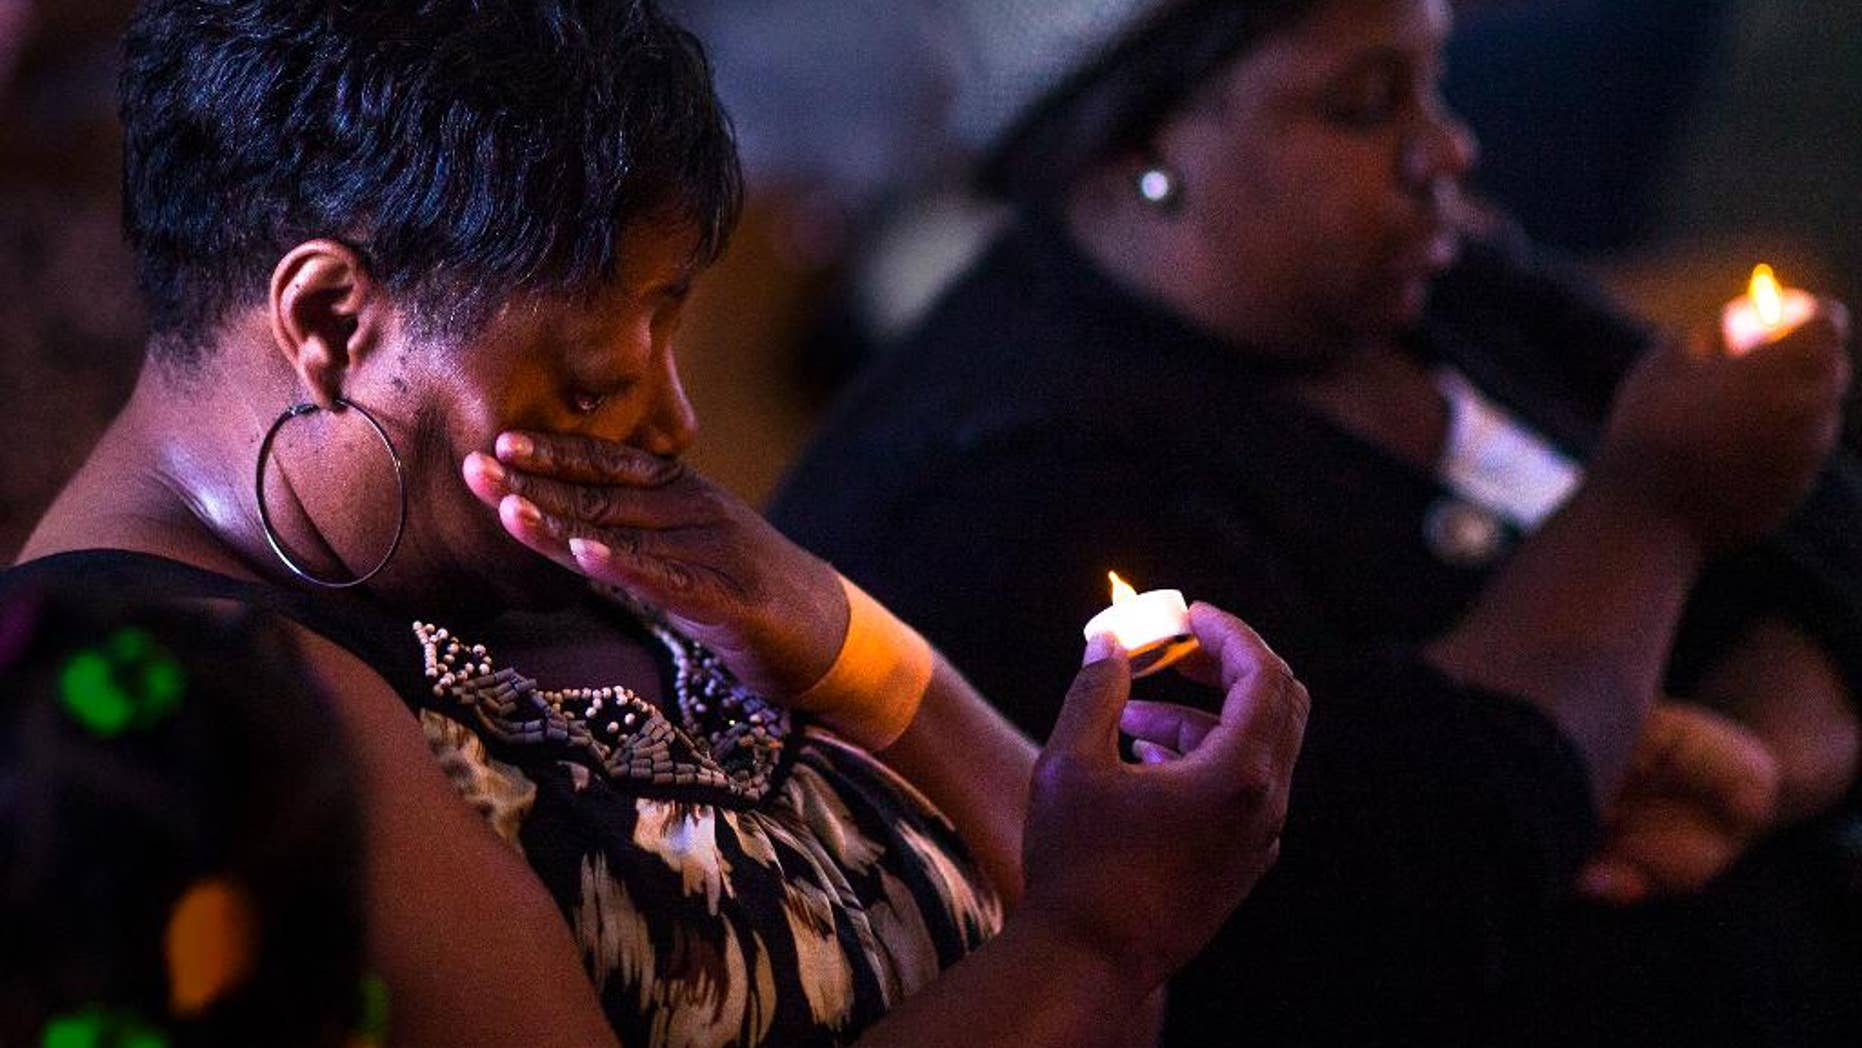 Jackie Pillow wipes a tear from her eye during a vigil to mourn the lives lost at the shooting in Charleston, S.C., Thursday, June 18, 2015, at Taylor Chapel AME Church in Bowling Green, Ky. Dylann Storm Roof, 21, was arrested Thursday in the slayings of several people, including the pastor at a prayer meeting inside a historic black church. (Austin Anthony/Daily News via AP)